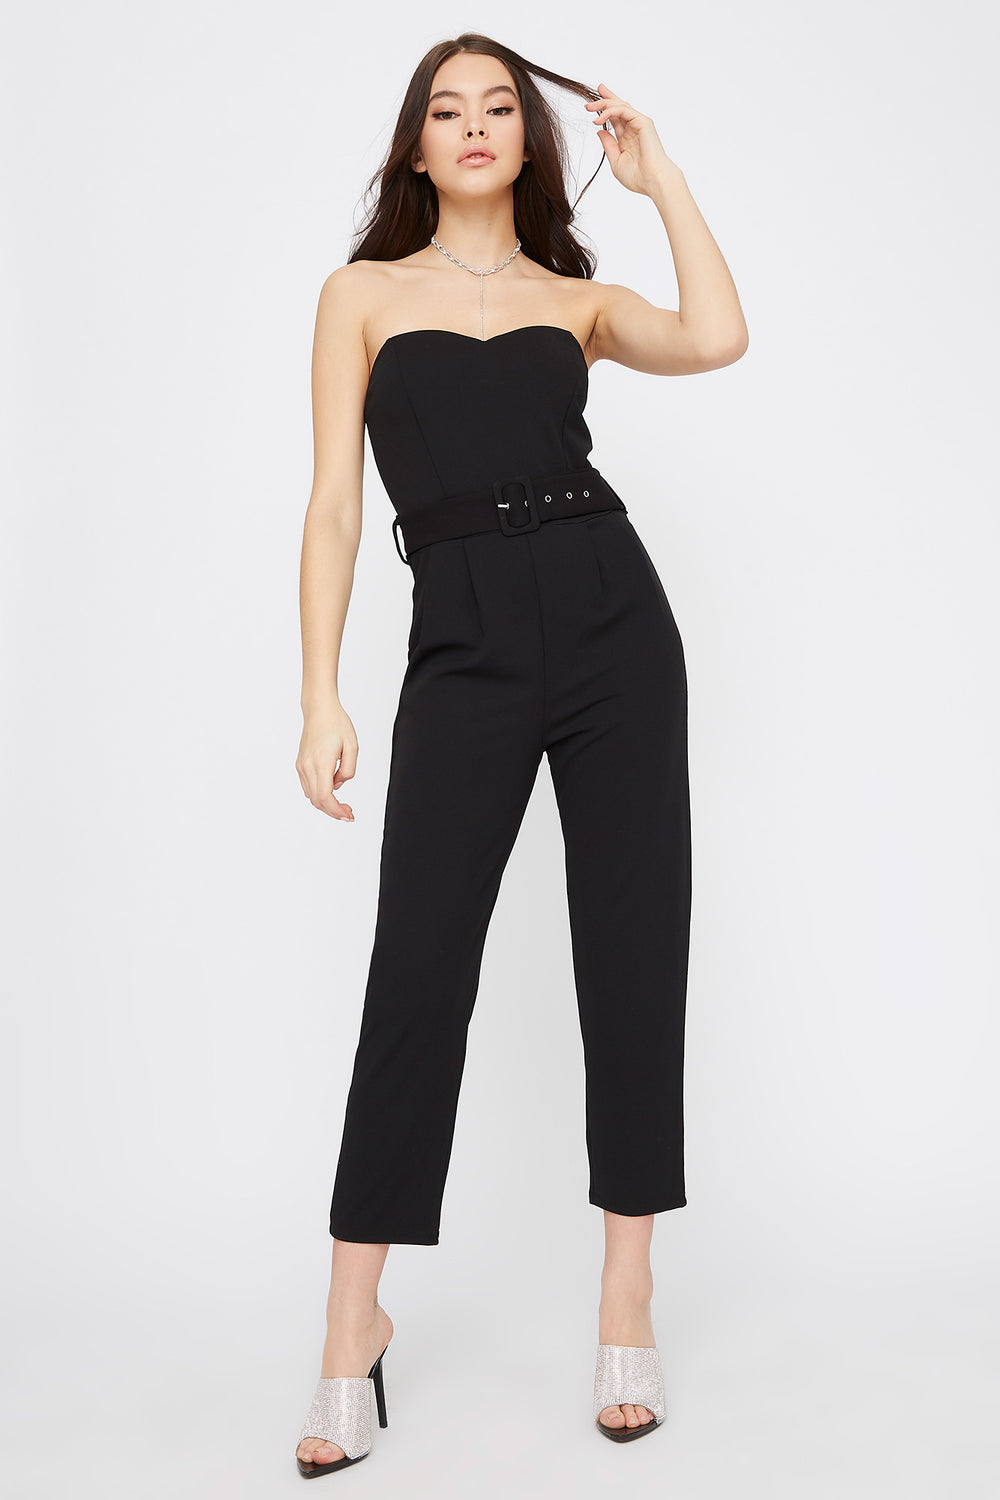 Strapless Sweetheart Neckline Belted Jumpsuit Black